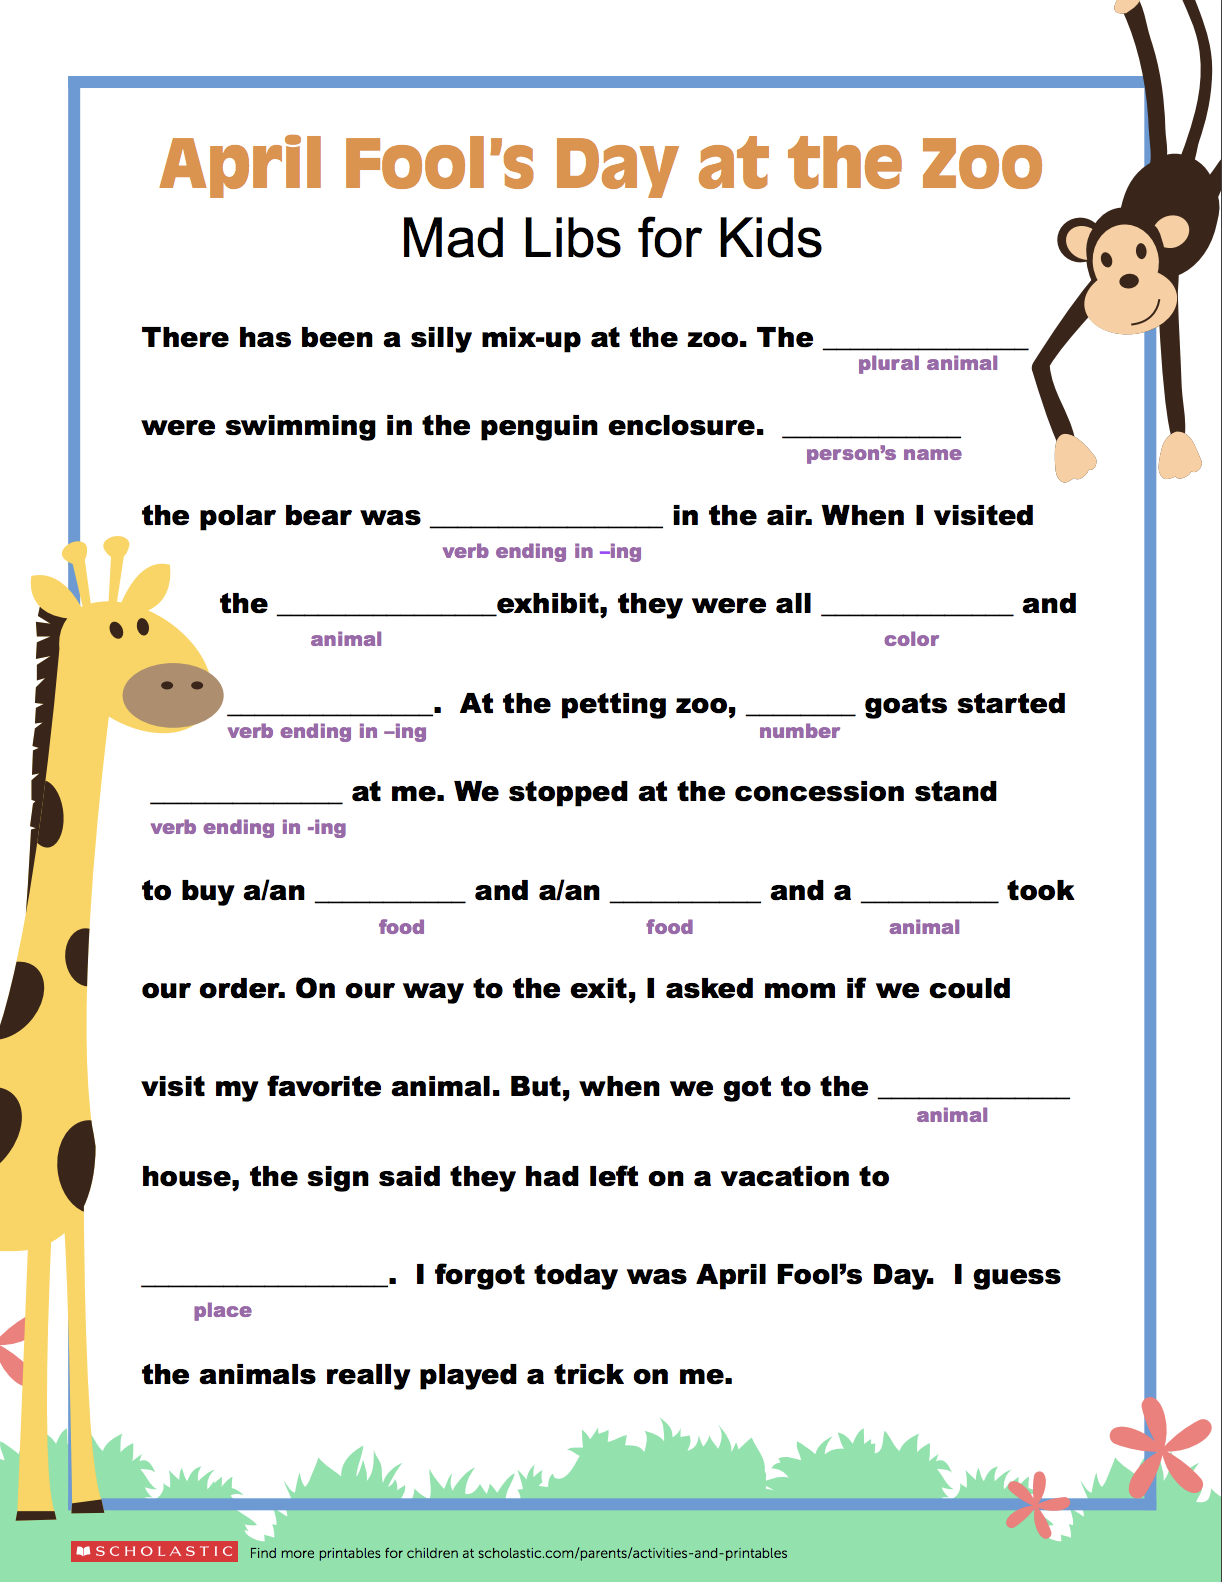 hight resolution of Tickle your creative writer's funny bone with this zany Mad Libs printable  that's perfect for April Fool's Day! 📝   Kids mad libs